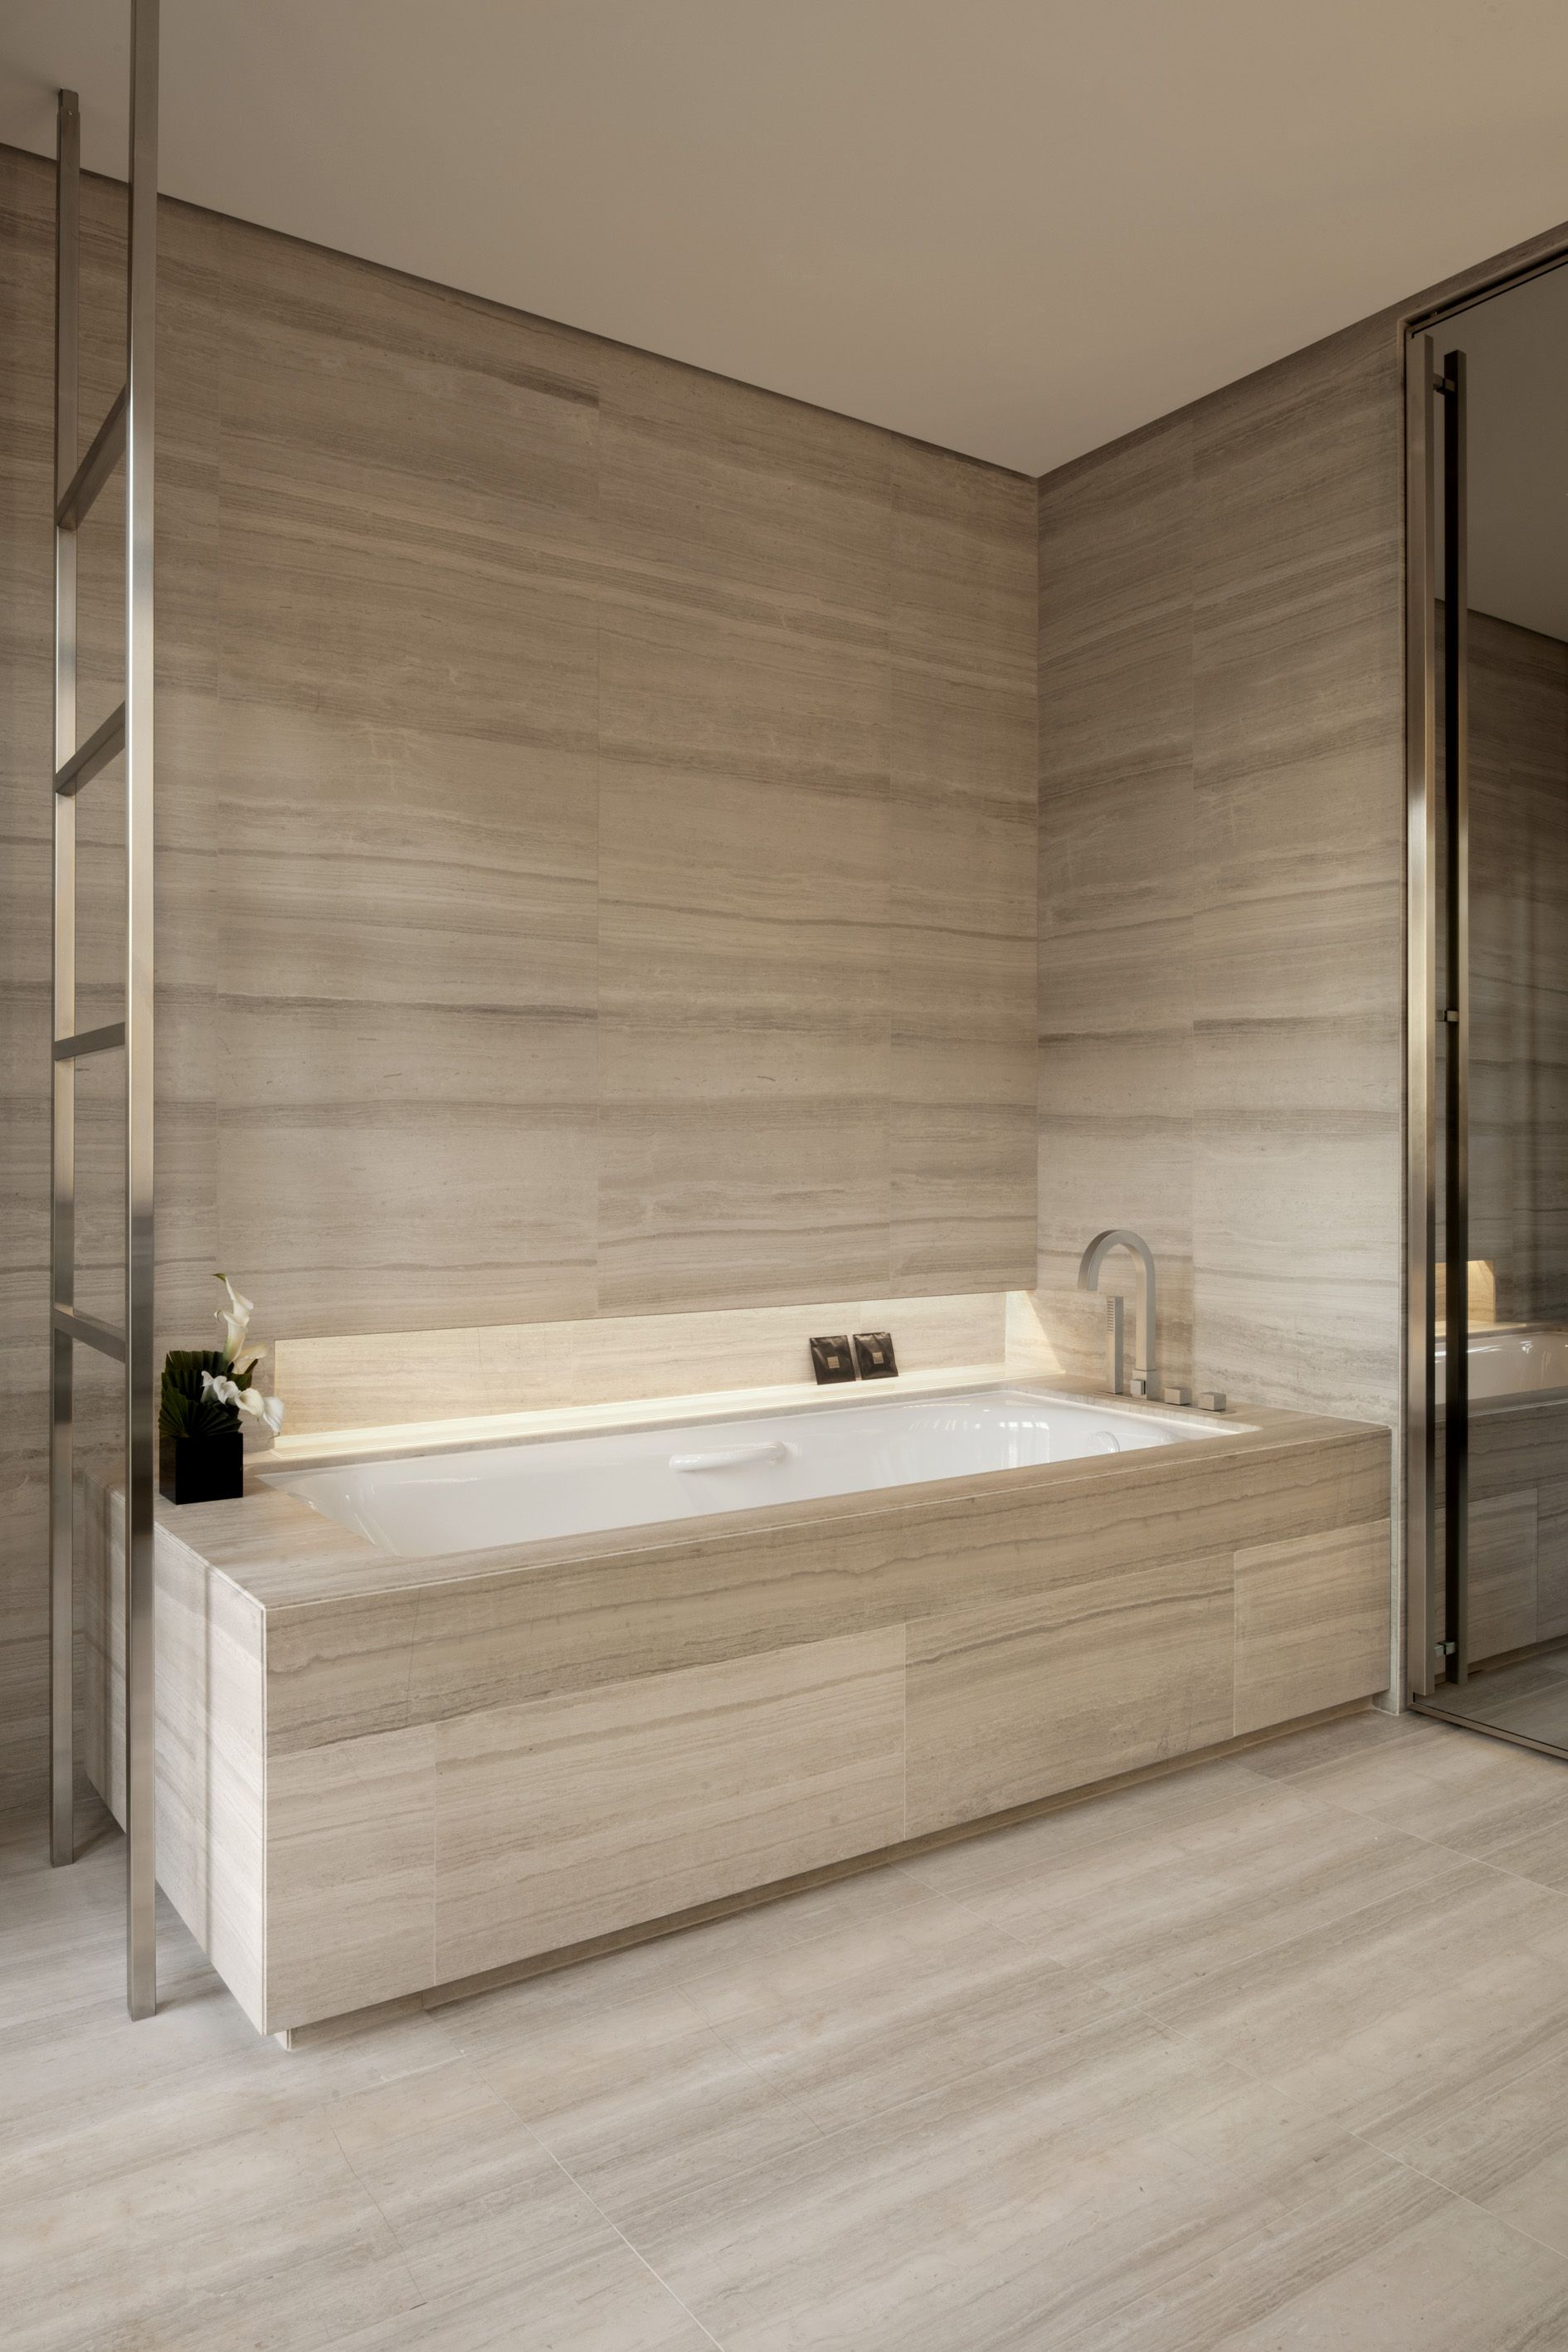 armani hotel milano_bathrooms in silk georgette stone. | bathroom